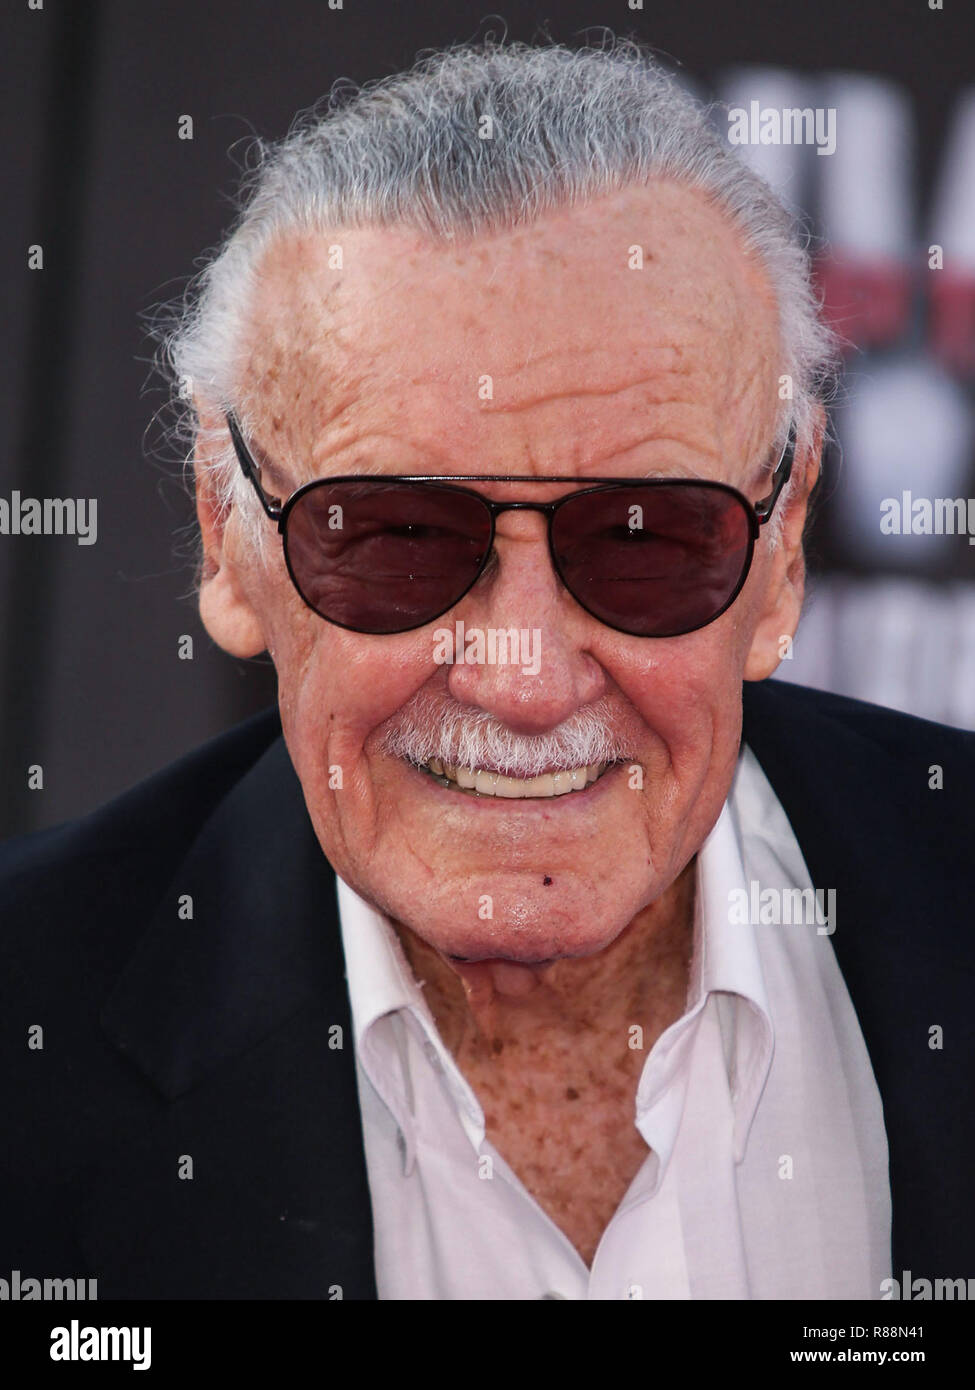 (FILE) Stan Lee Dies At 95. Stan Lee, the legendary writer, editor and publisher of Marvel Comics whose fantabulous but flawed creations made him a real-life superhero to comic book lovers everywhere, has died. He was 95. Lee, who began in the business in 1939 and created or co-created Black Panther, Spider-Man, the X-Men, the Mighty Thor, Iron Man, the Fantastic Four, the Incredible Hulk, Daredevil and Ant-Man, among countless other characters, died early Monday morning at Cedars-Sinai Medical Center in Los Angeles, a family representative told The Hollywood Reporter. LOS ANGELES, CA, USA - A - Stock Image